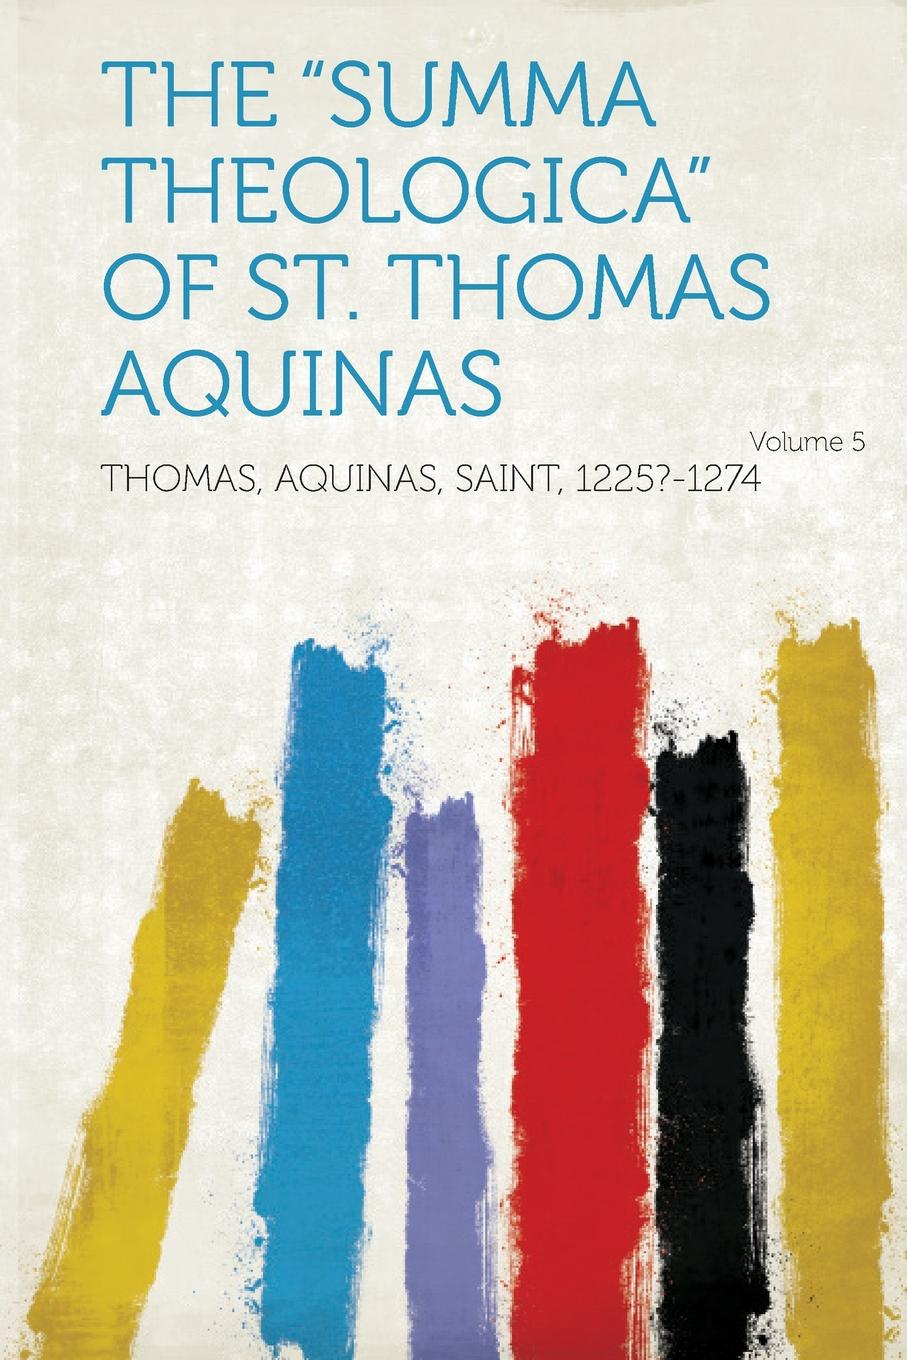 Thomas Aquinas The Summa Theologica of St. Thomas Aquinas Volume 5 aquinas saint thomas aquinas ethicus or the moral teaching of st thomas a translation of the principle portions of the second part of the summa theologica with notes